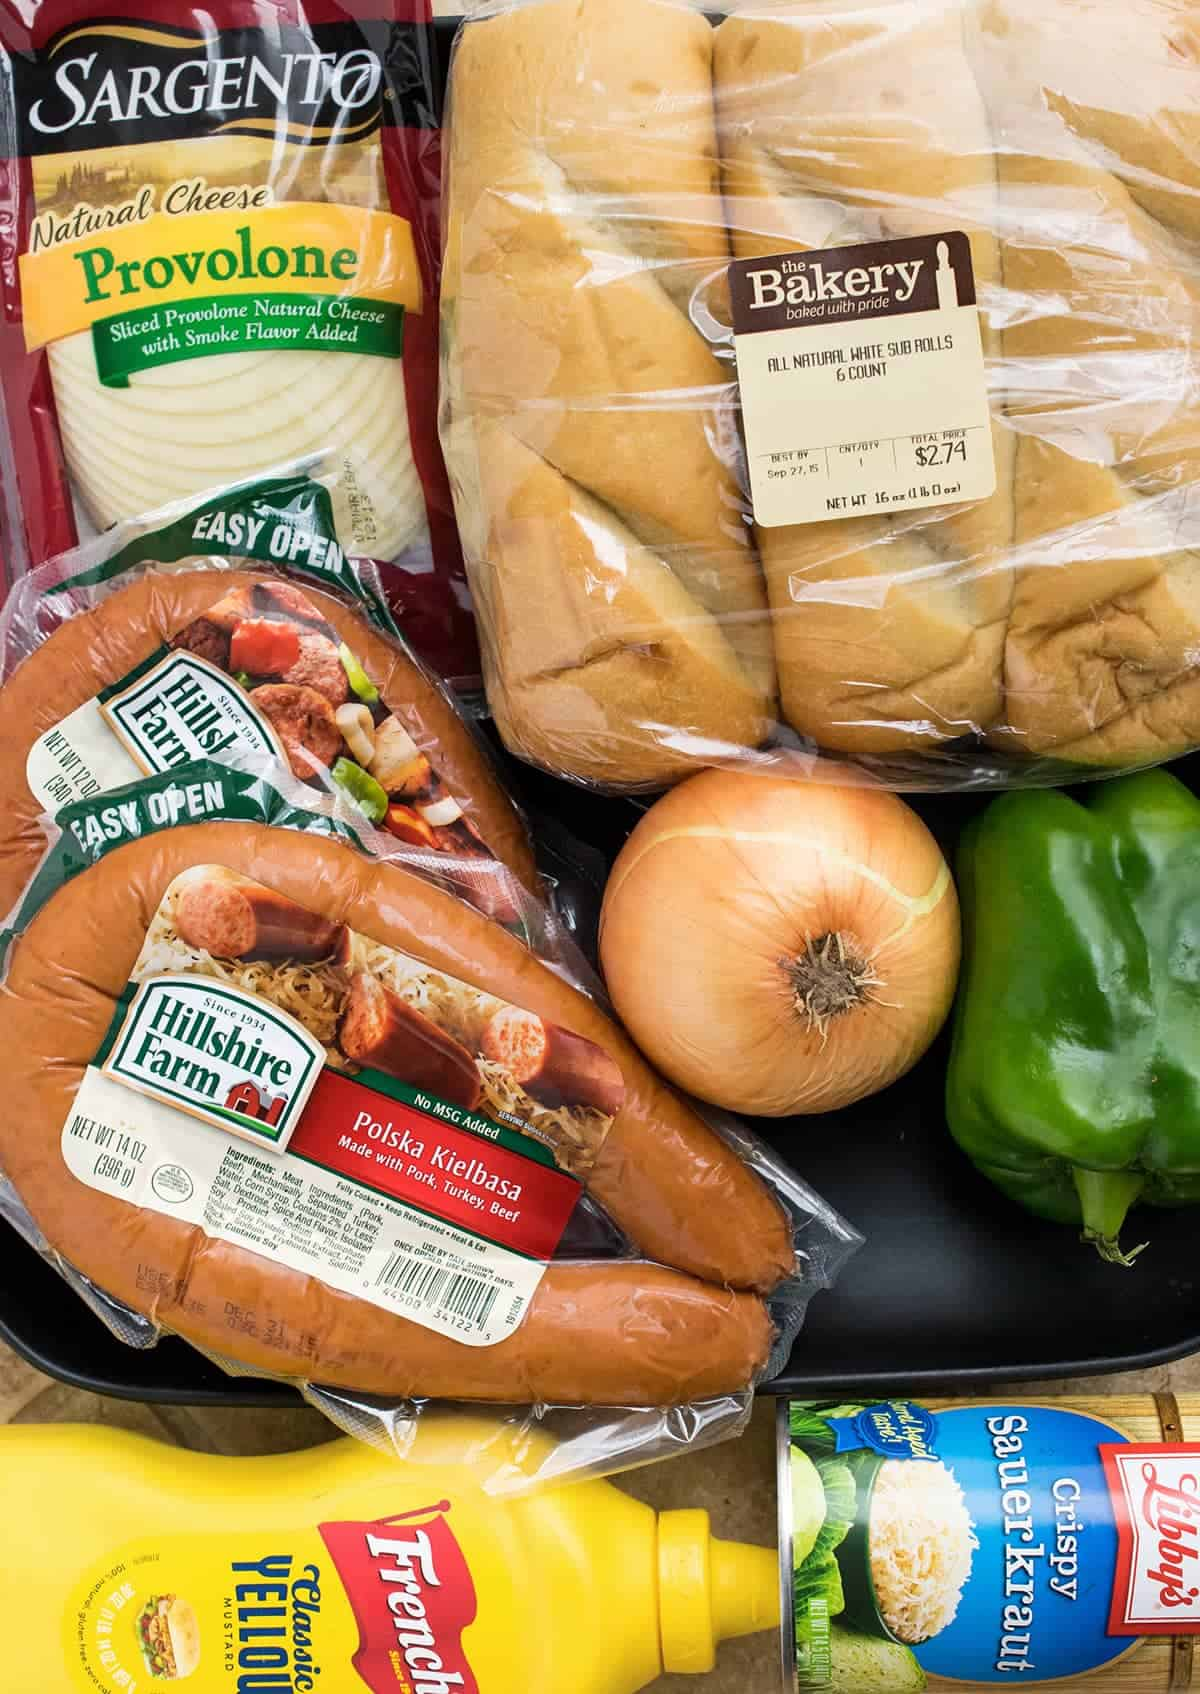 Ingredients for polish sausage sandwiches including kielbasa, hoagie rolls, peppers, onions, slices provolone, sauerkraut, and mustard.